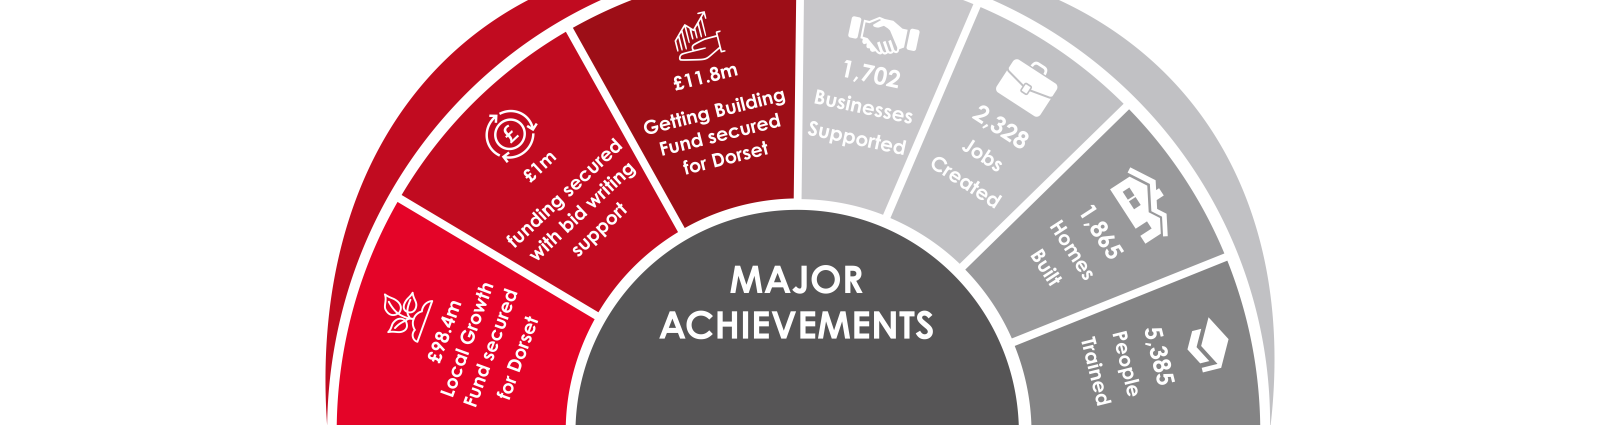 Dorset LEP Major Achievements banner